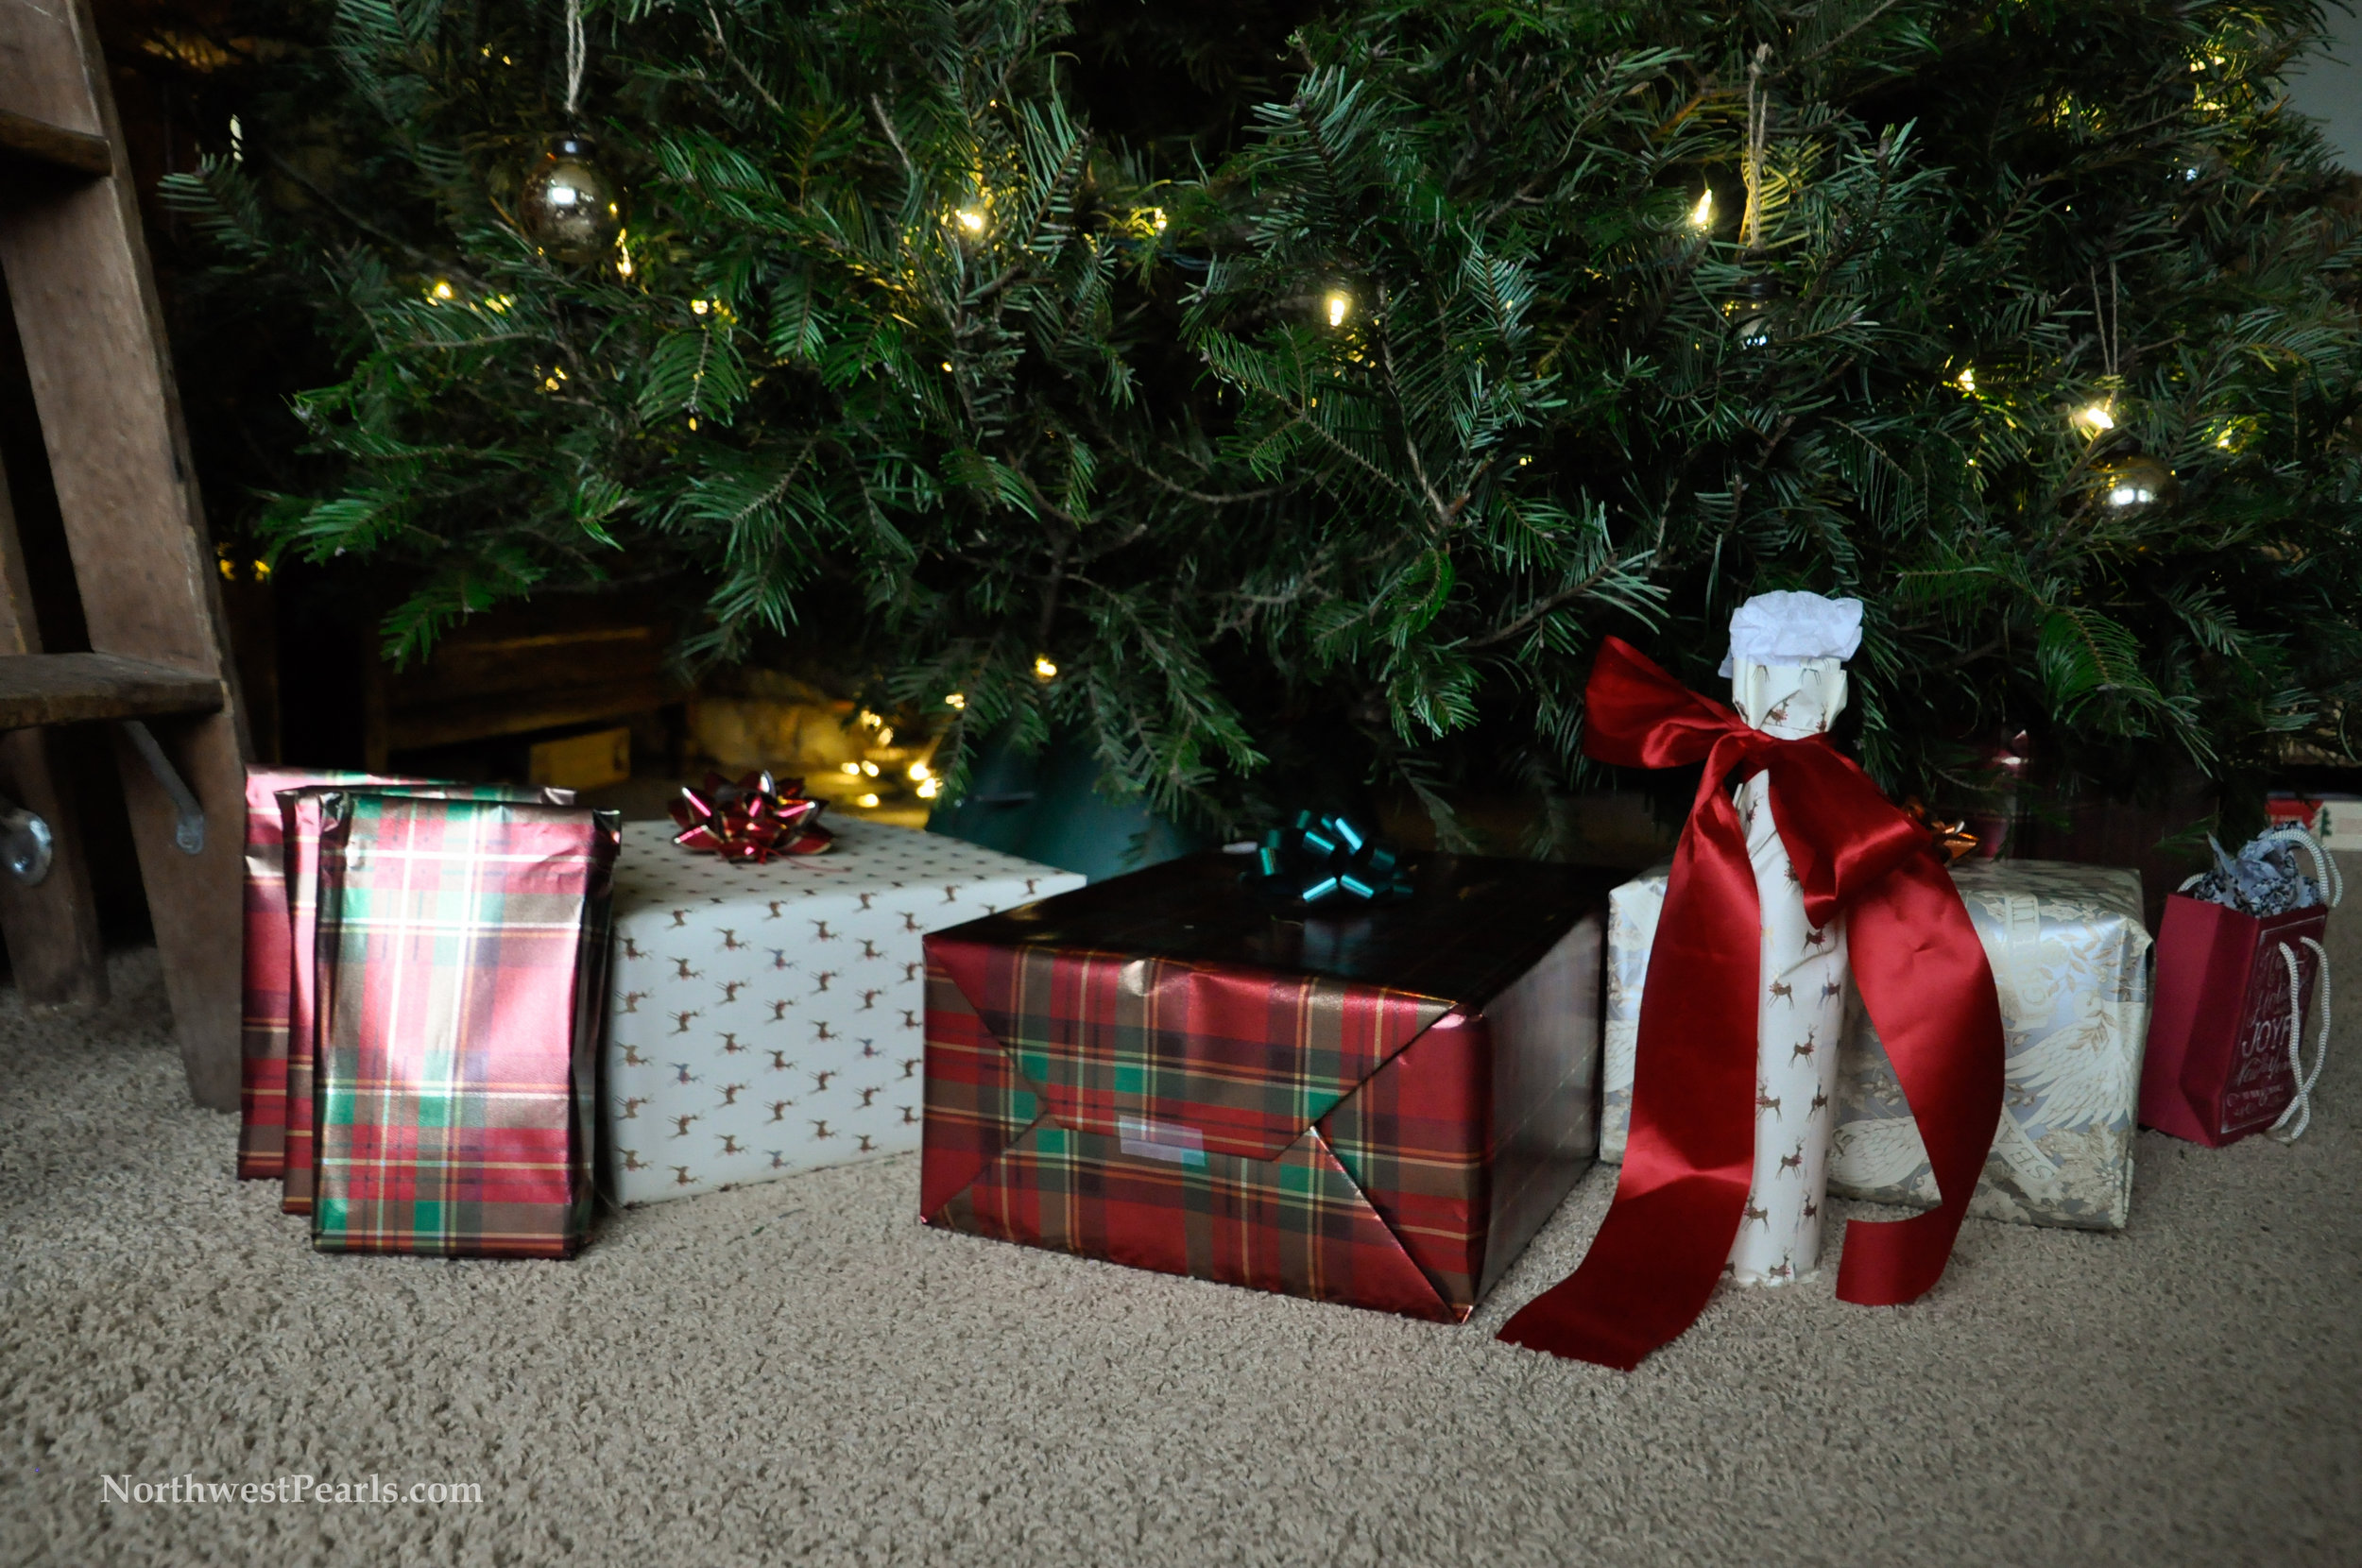 Northwest Pearls: Christmas Tree 2015